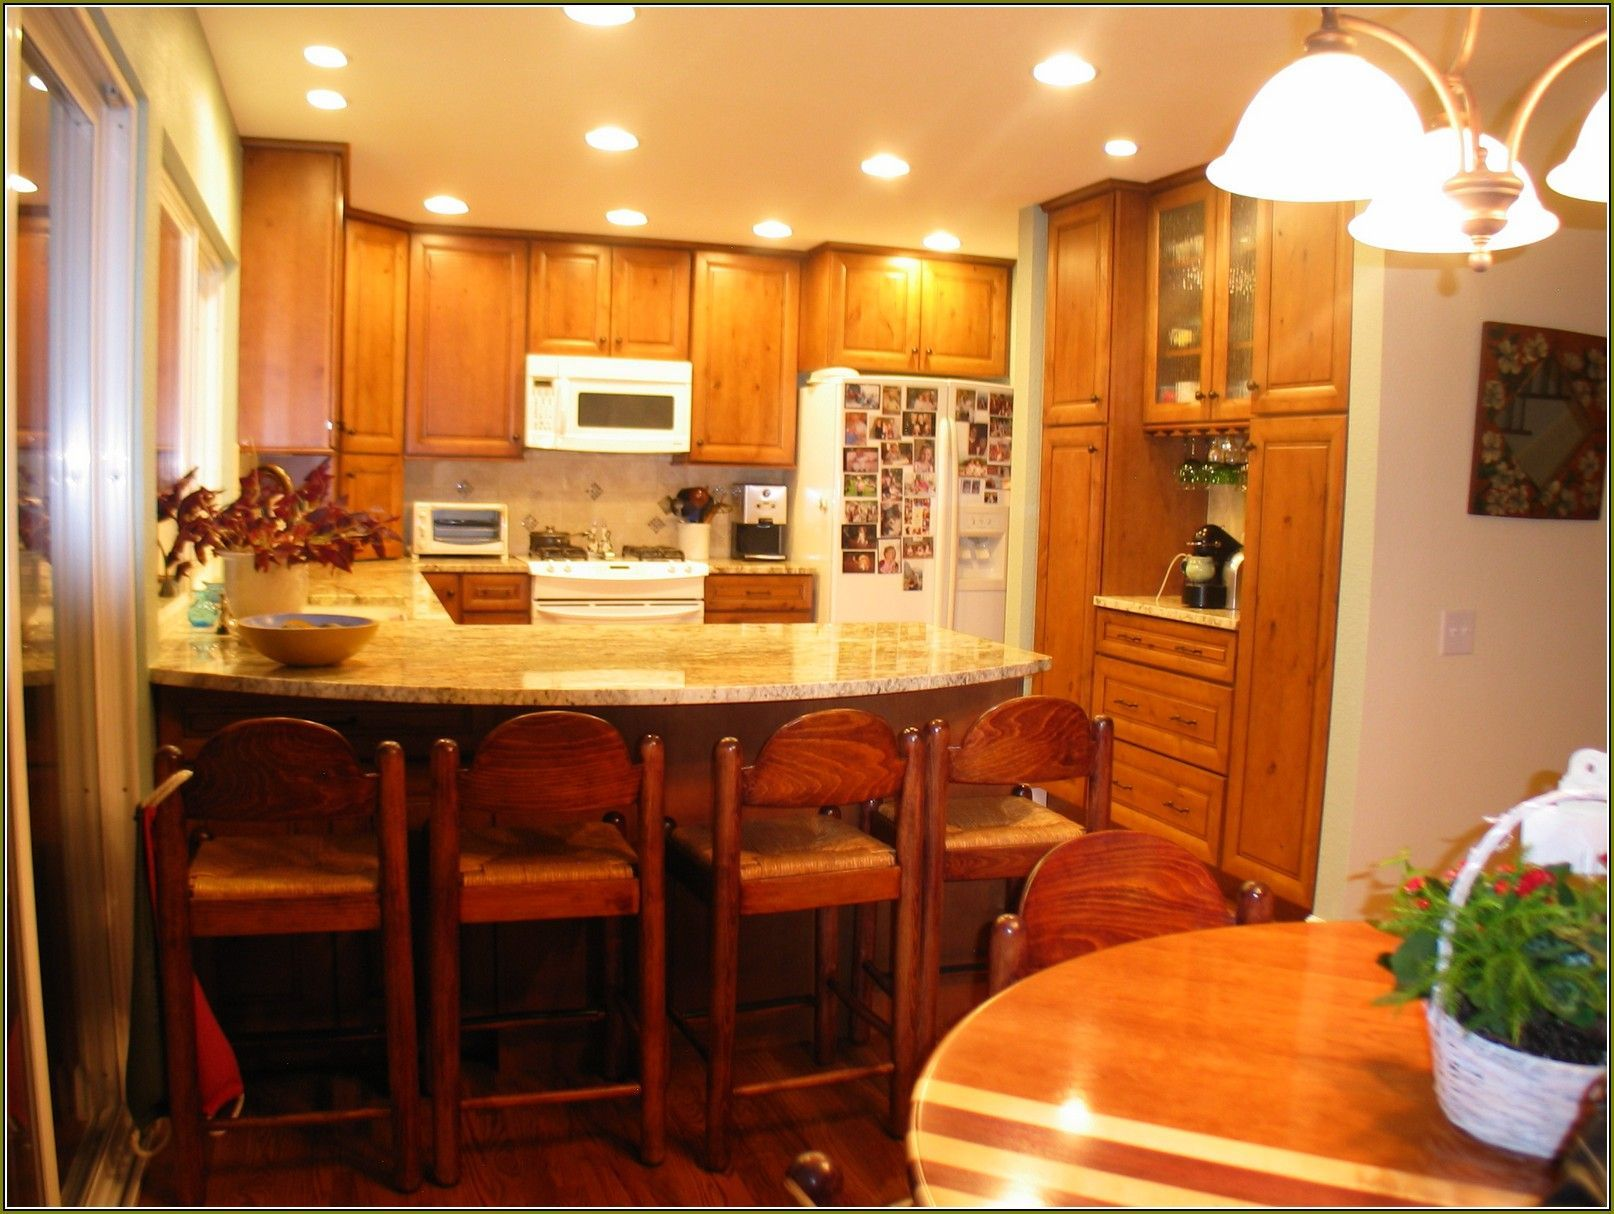 In Stock Kitchen Cabinets At Menards From Cheap Kitchen Cabinets Denver Cabinets Cheap De In 2020 Cottage Kitchen Design Small Cottage Kitchen Cheap Kitchen Cabinets